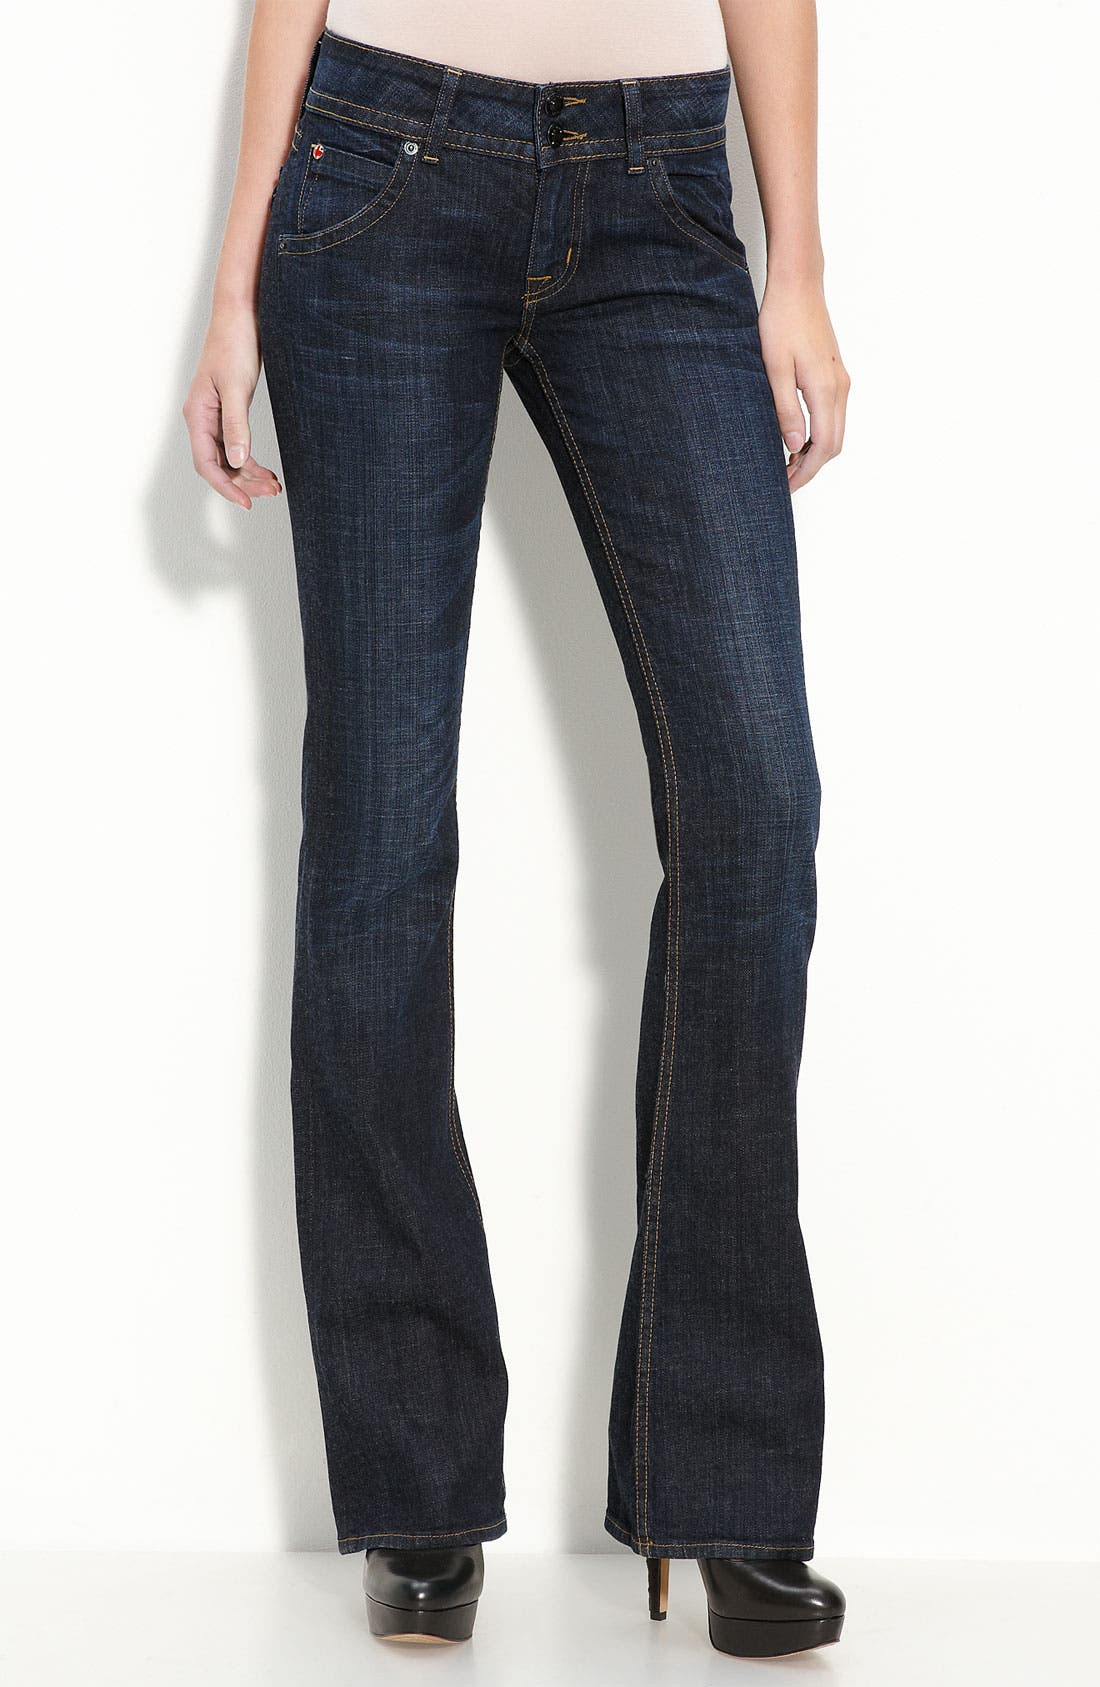 Alternate Image 1 Selected - Hudson Jeans Triangle Pocket Bootcut Stretch Jeans (Loving Cup Wash)